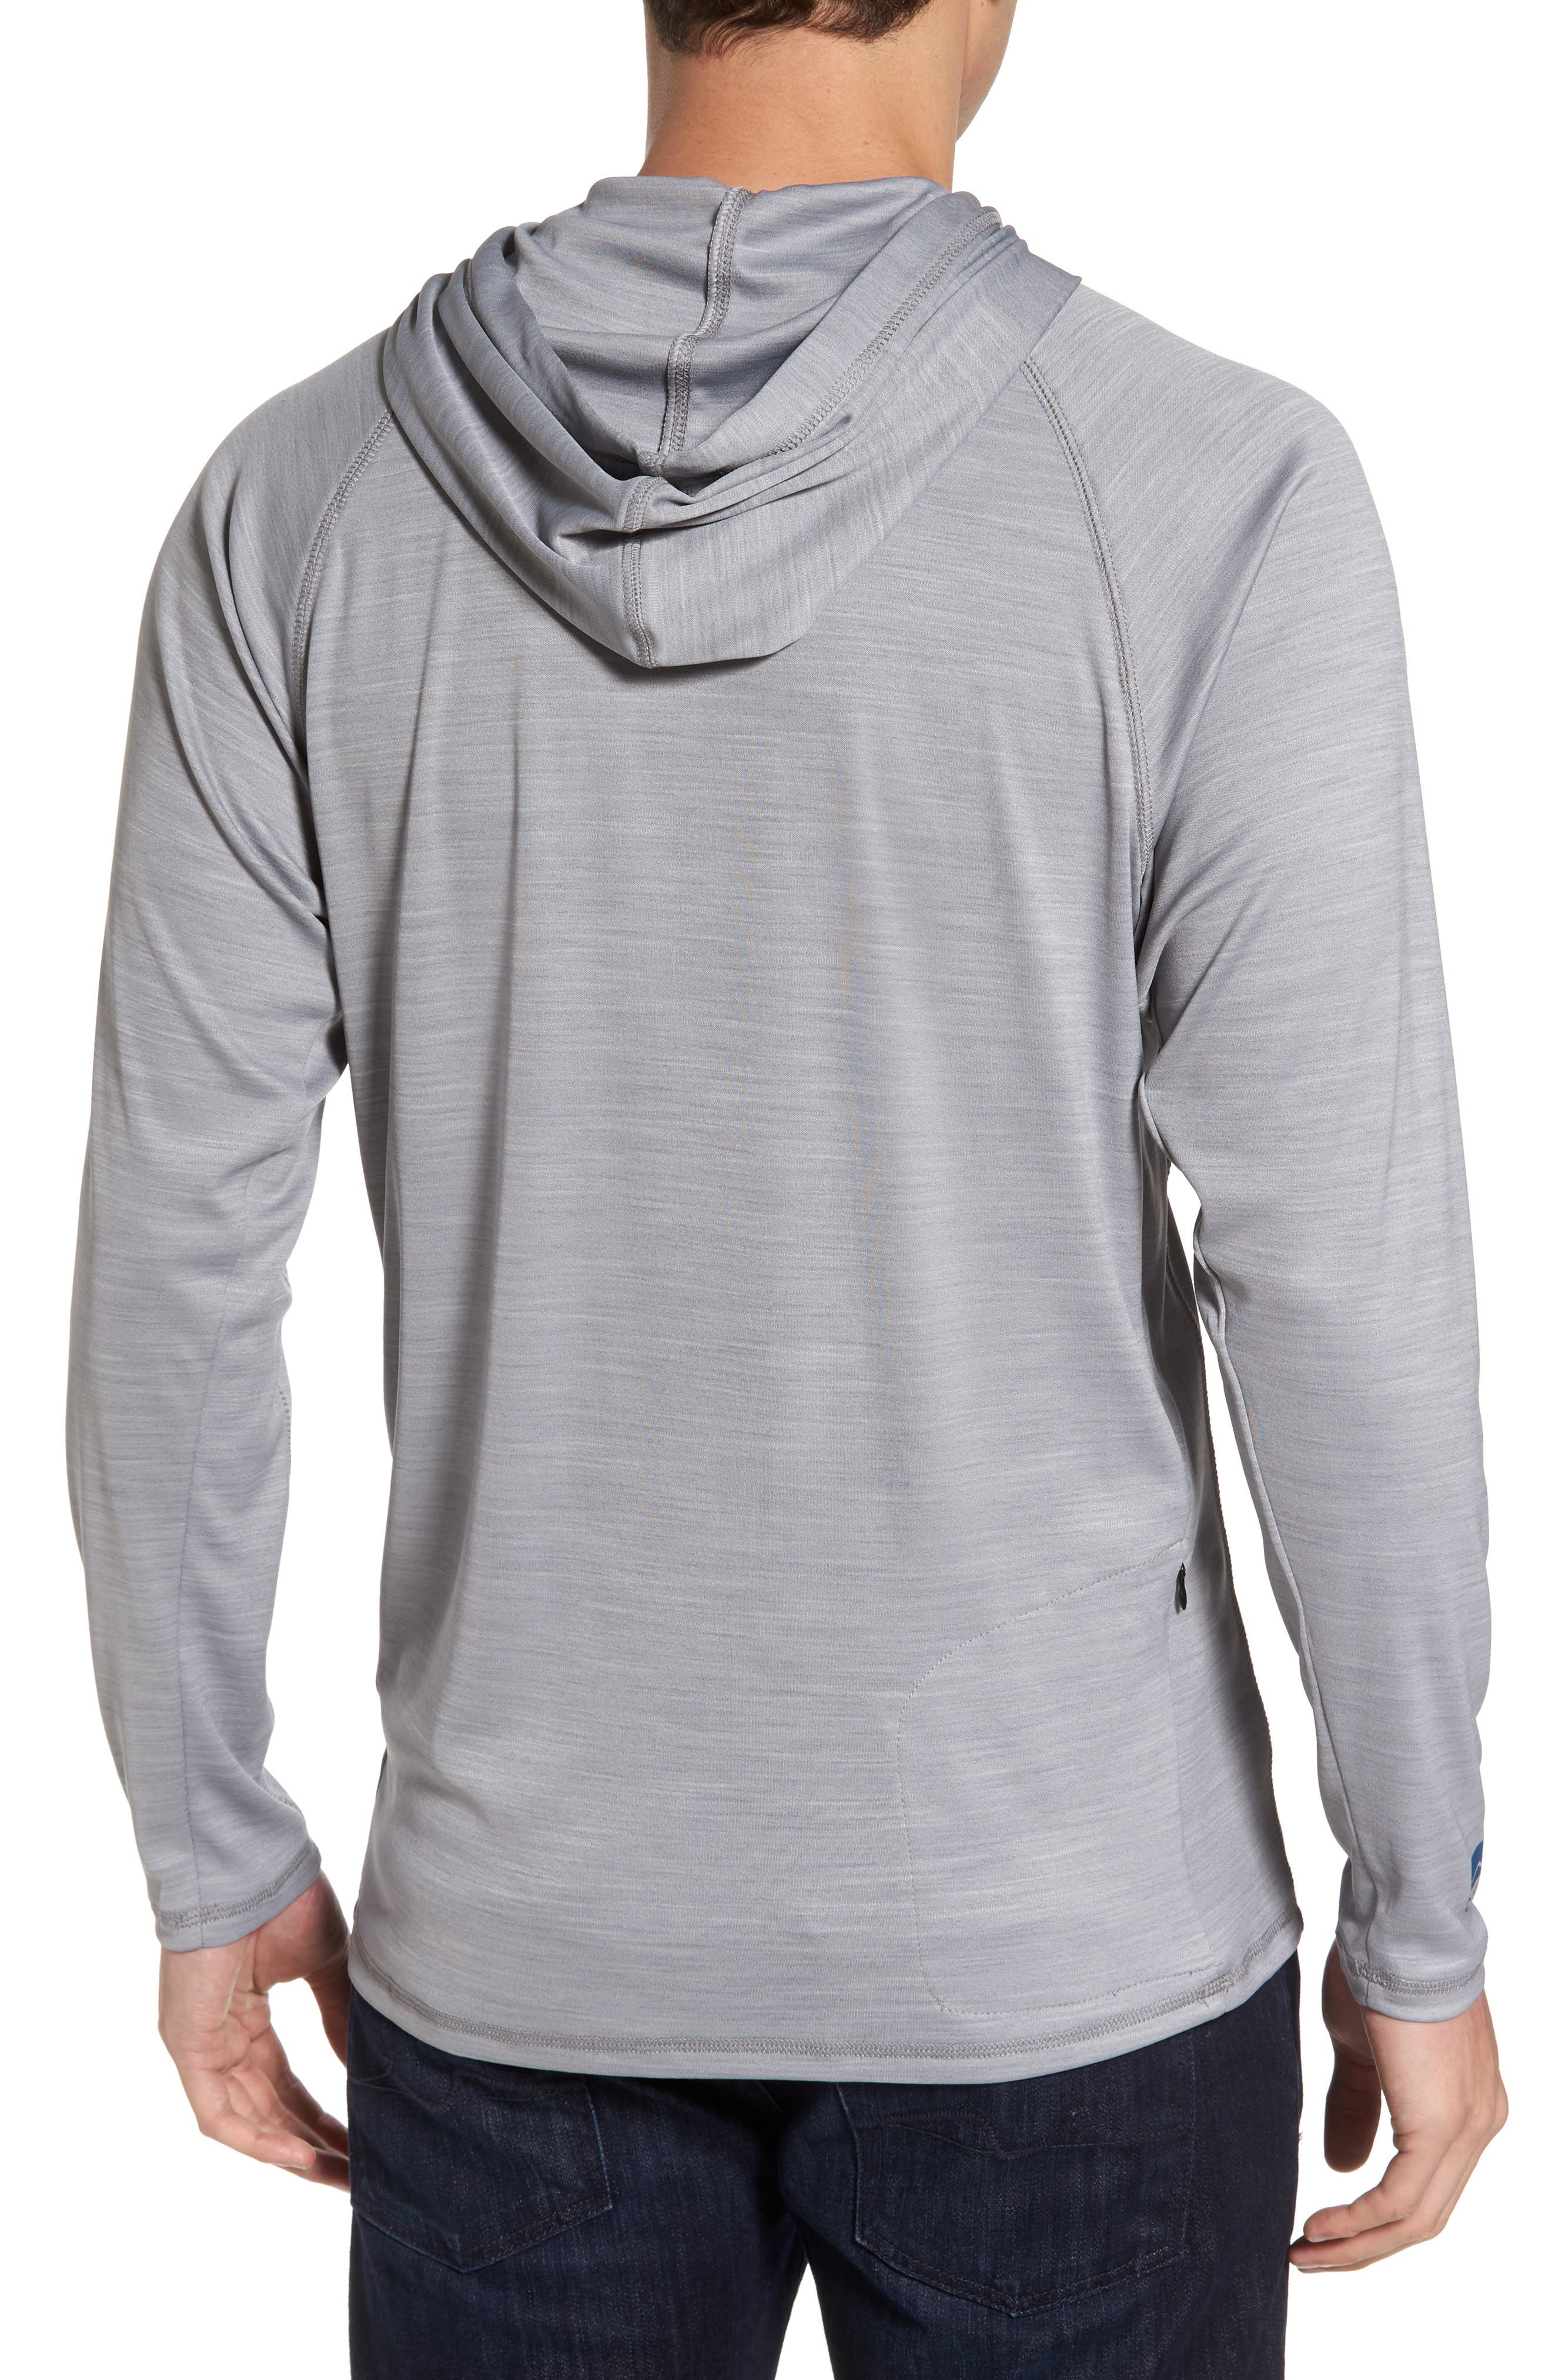 Alternate Image 2  - Cova Undercover Hooded Long Sleeve Performance T-Shirt